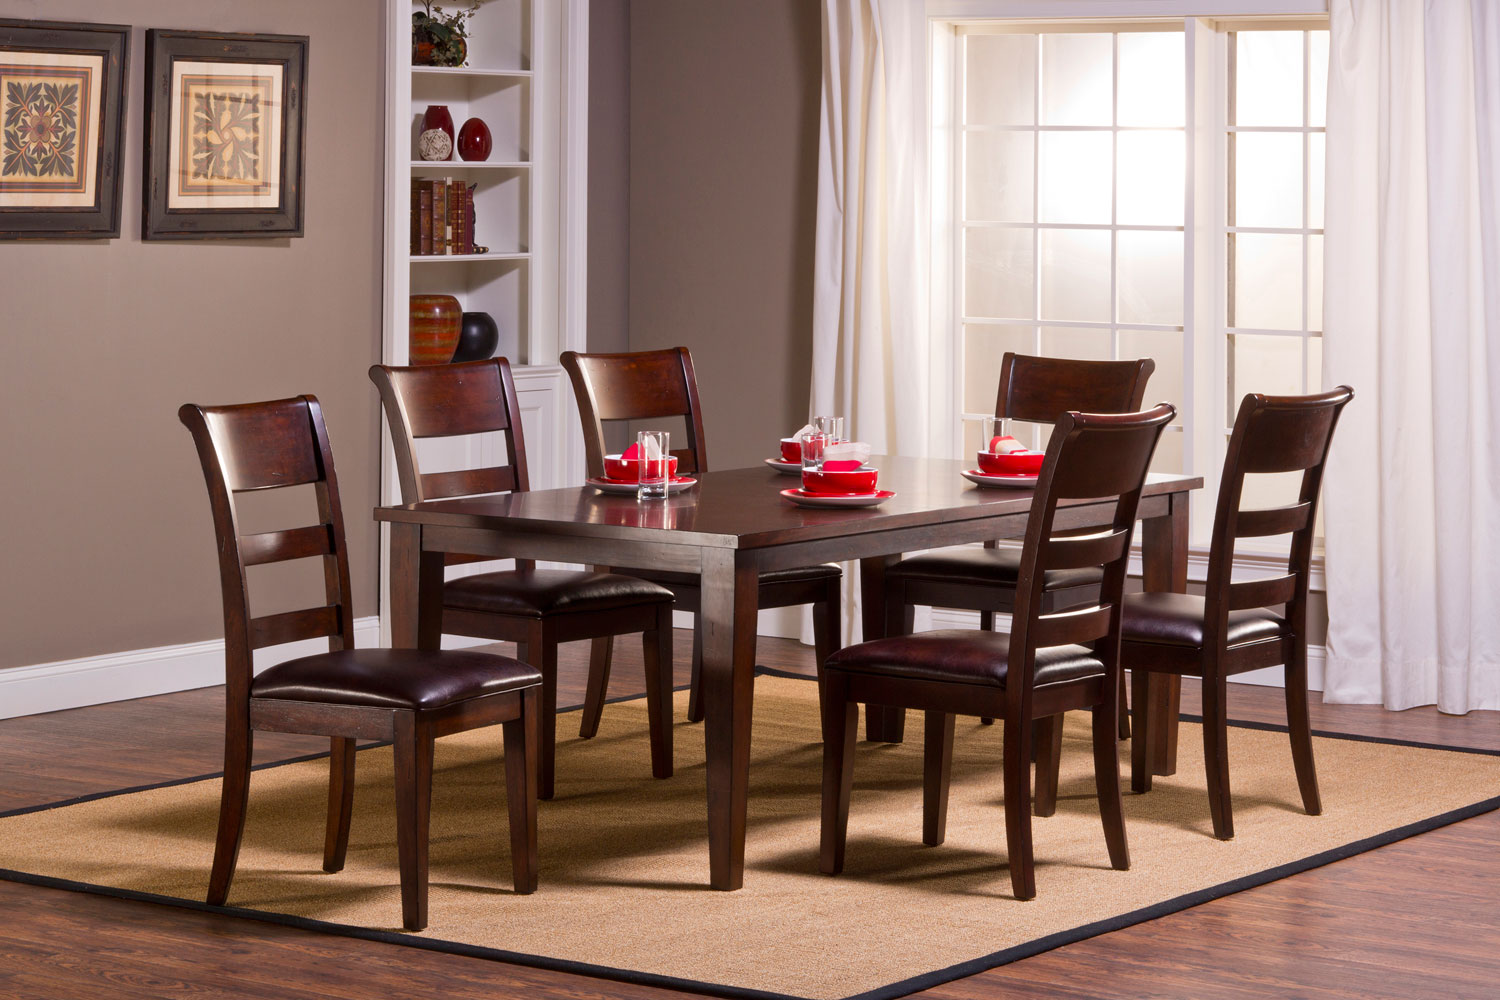 Hillsdale Park Avenue 7 piece Dining Set with Leg Table - Dark Cherry